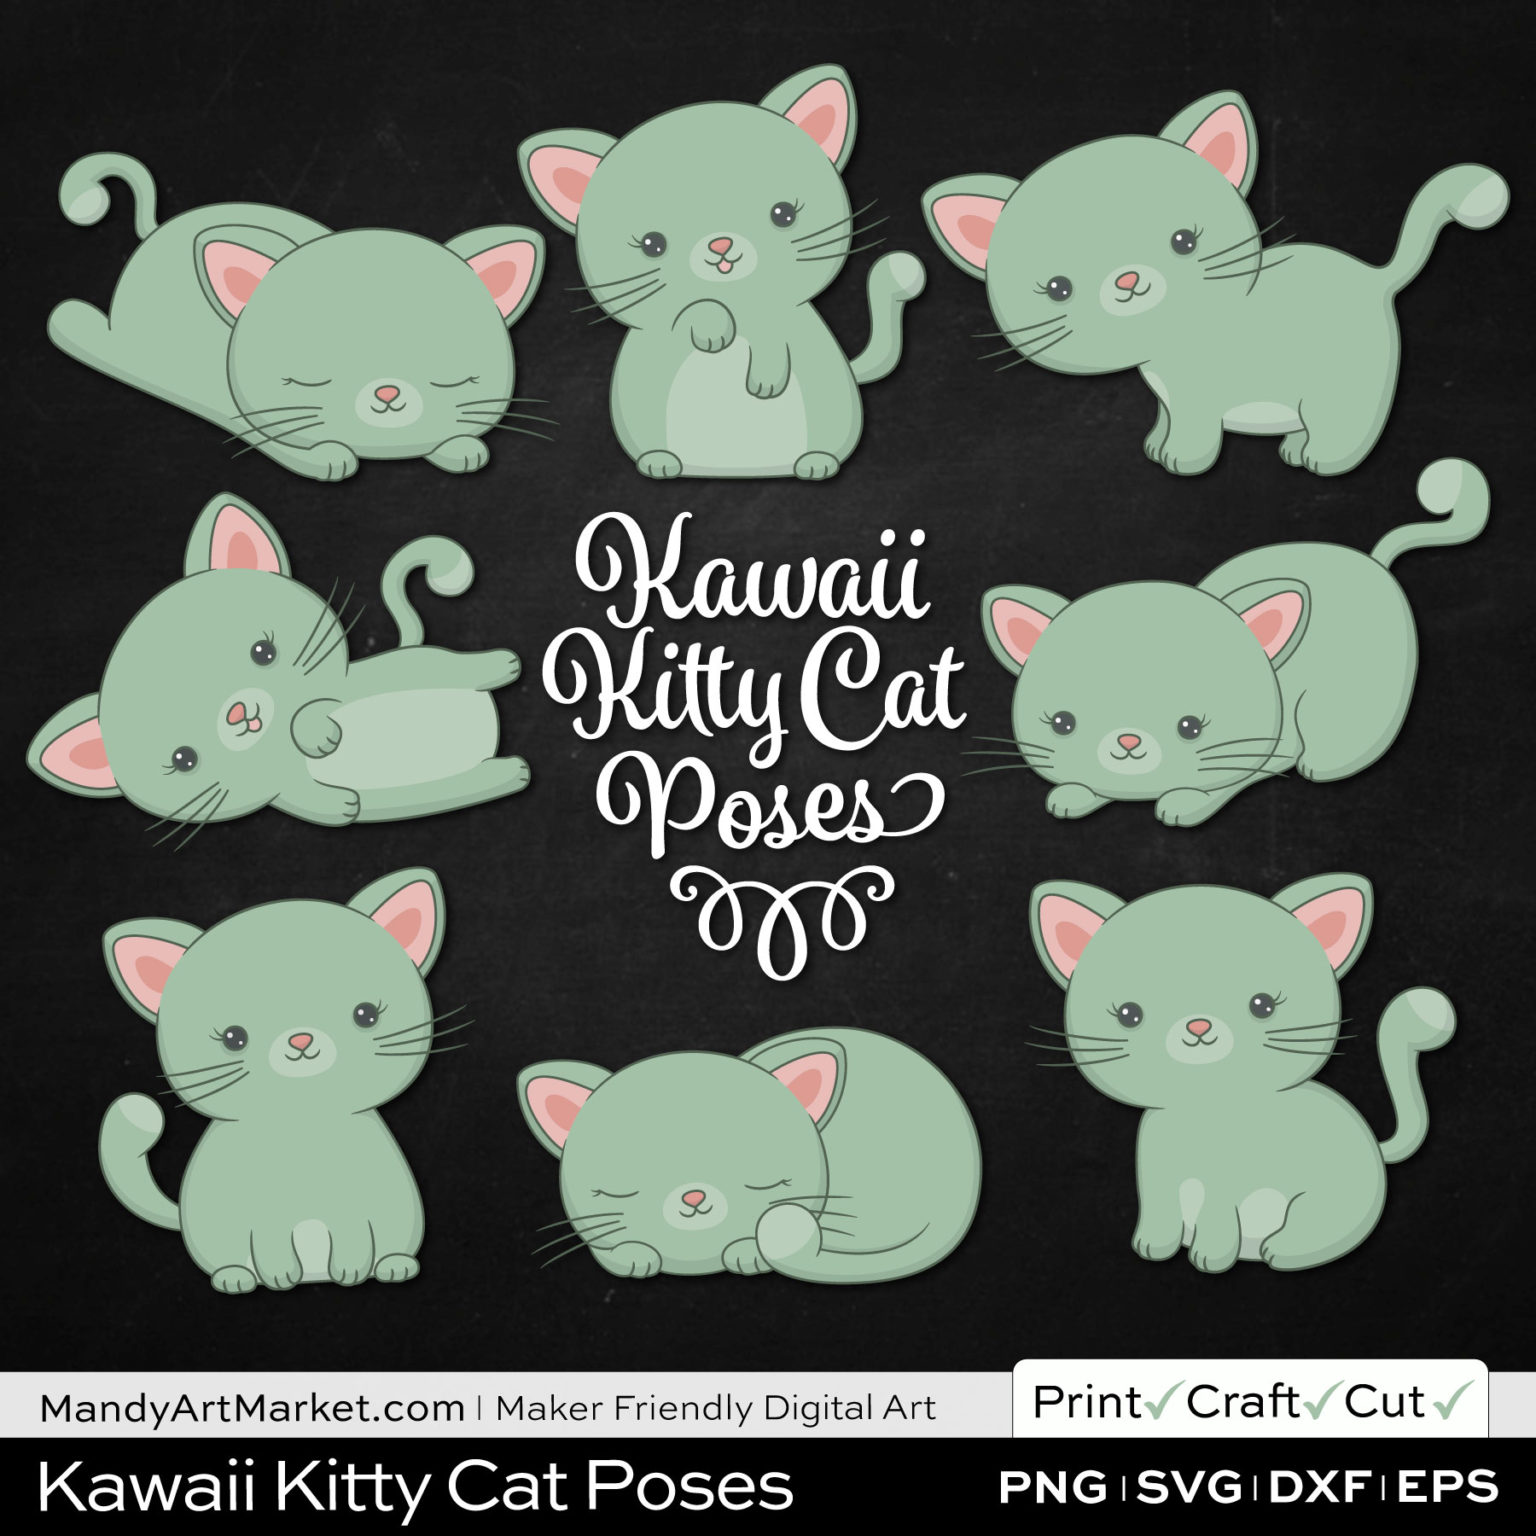 Sage Green Kawaii Kitty Cat Poses Clipart on Black Background